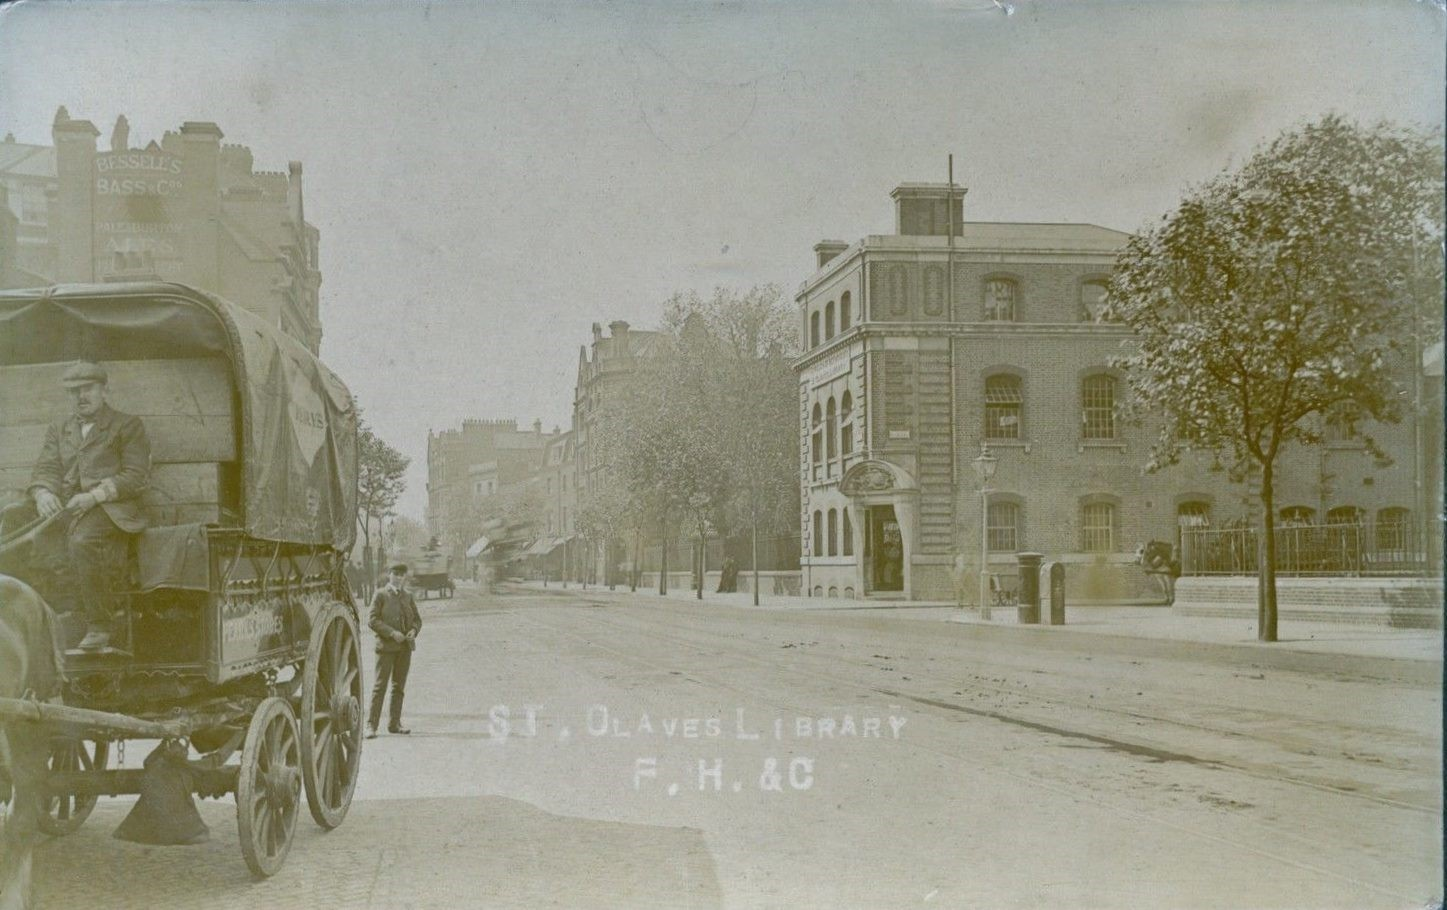 Tooley Street from Tower Bridge Road. The building to be seen here on the right hand corner of Tooley Street and Potter's Field was St.Olave's Library..jpg